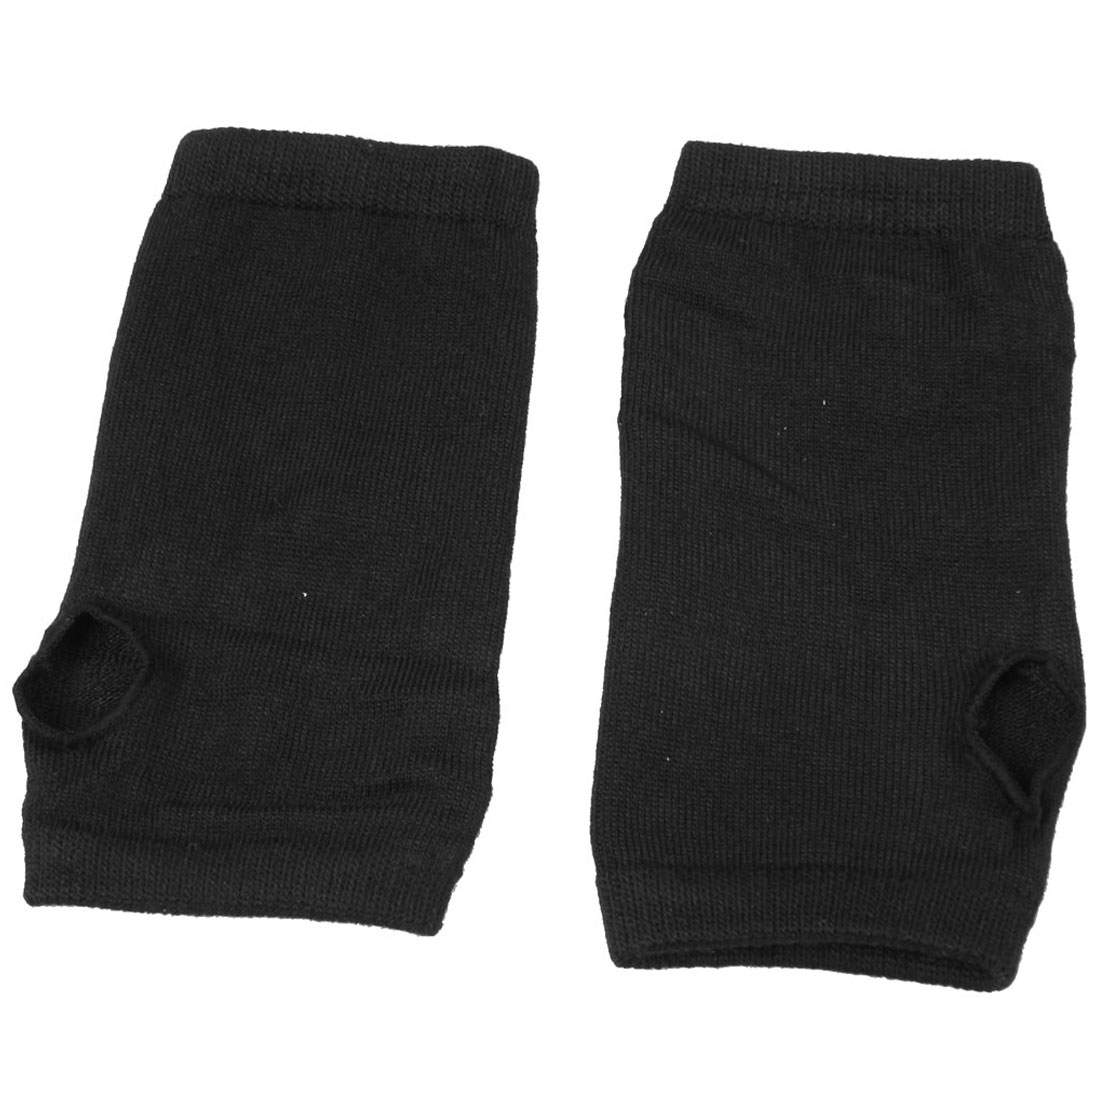 Pair Extended Black Thumbhole Palm Wrist Warmers for Men Woman